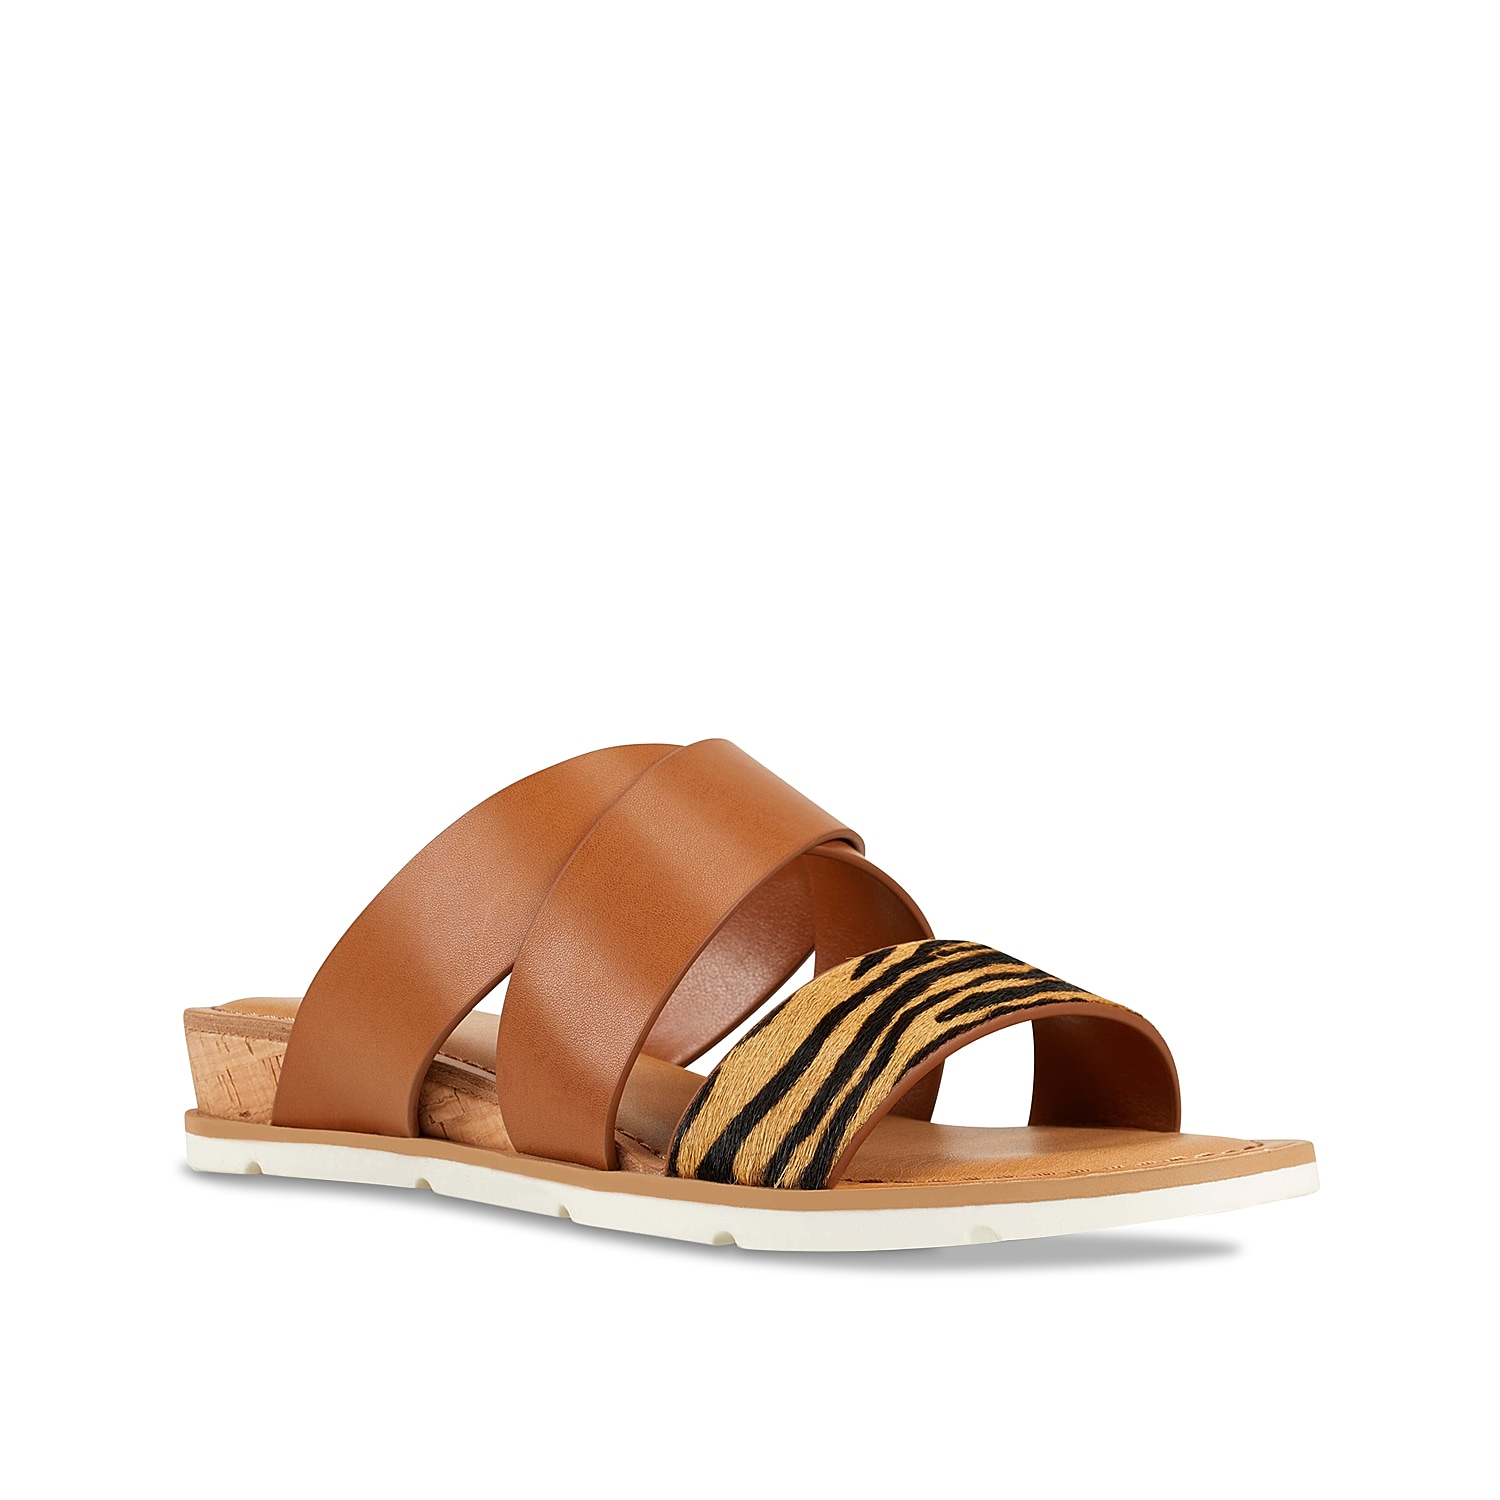 The Desiree wedge sandal from Nine West gives you a great sense of fashion. This silhouette features an animal printed toe strap and cork heel for extra style points!